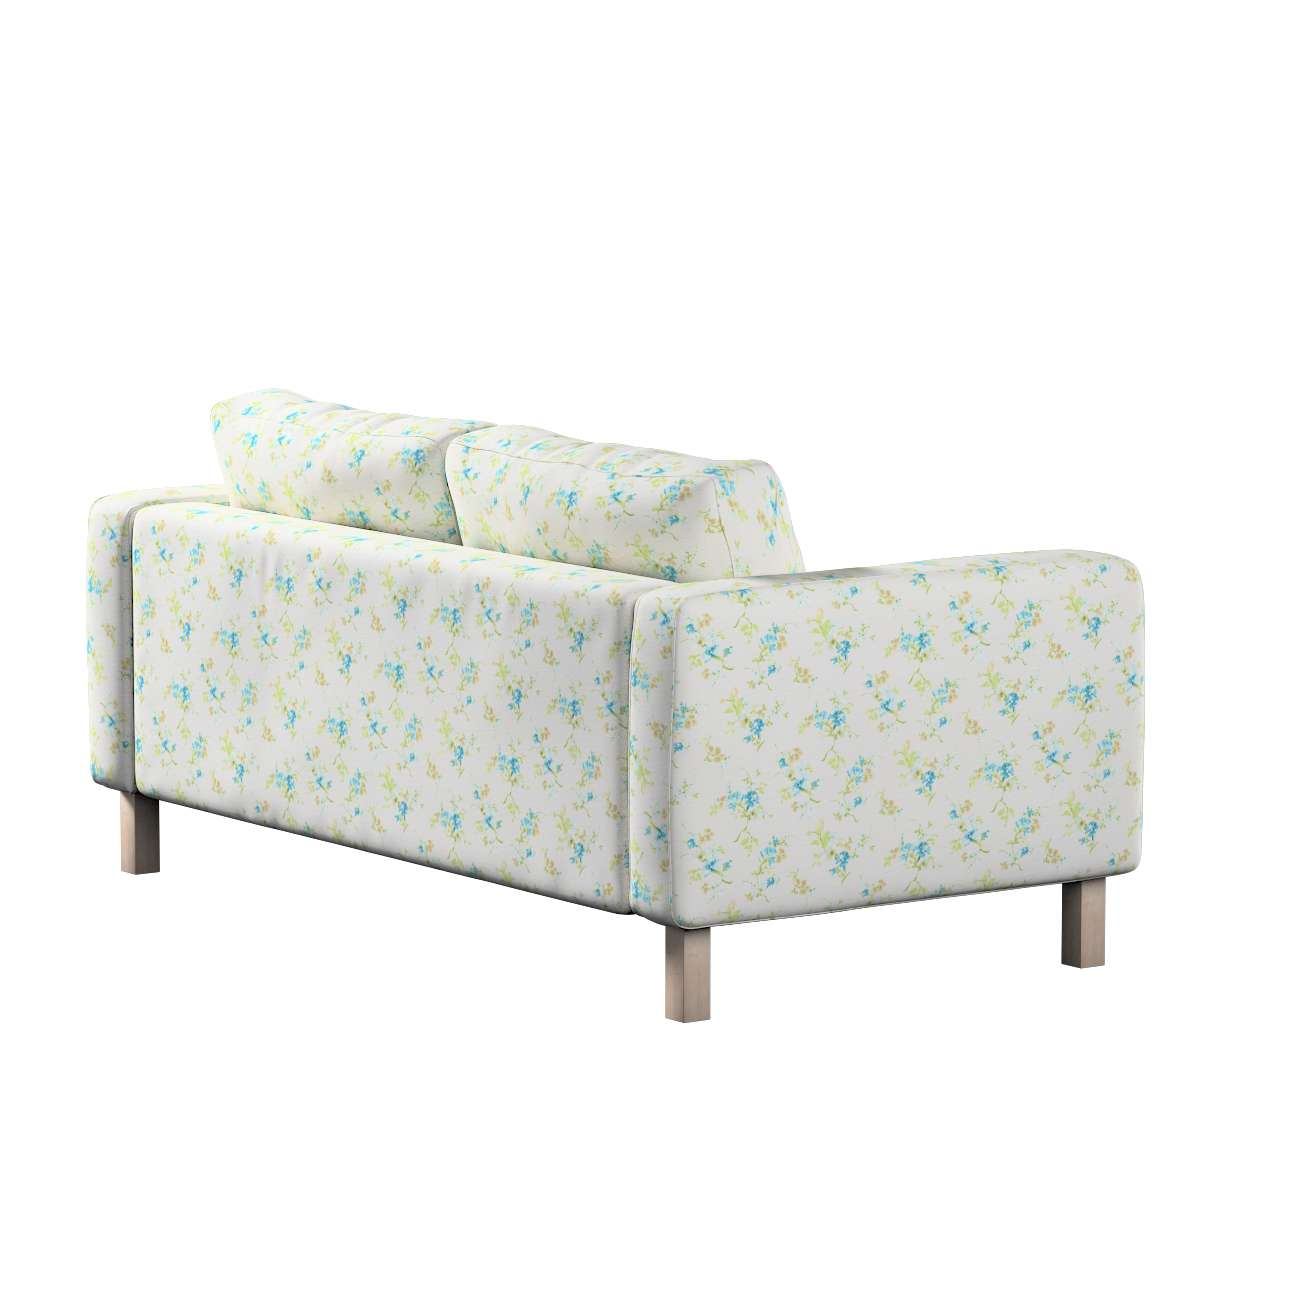 Karlstad 2-seater sofa cover in collection Mirella, fabric: 141-16